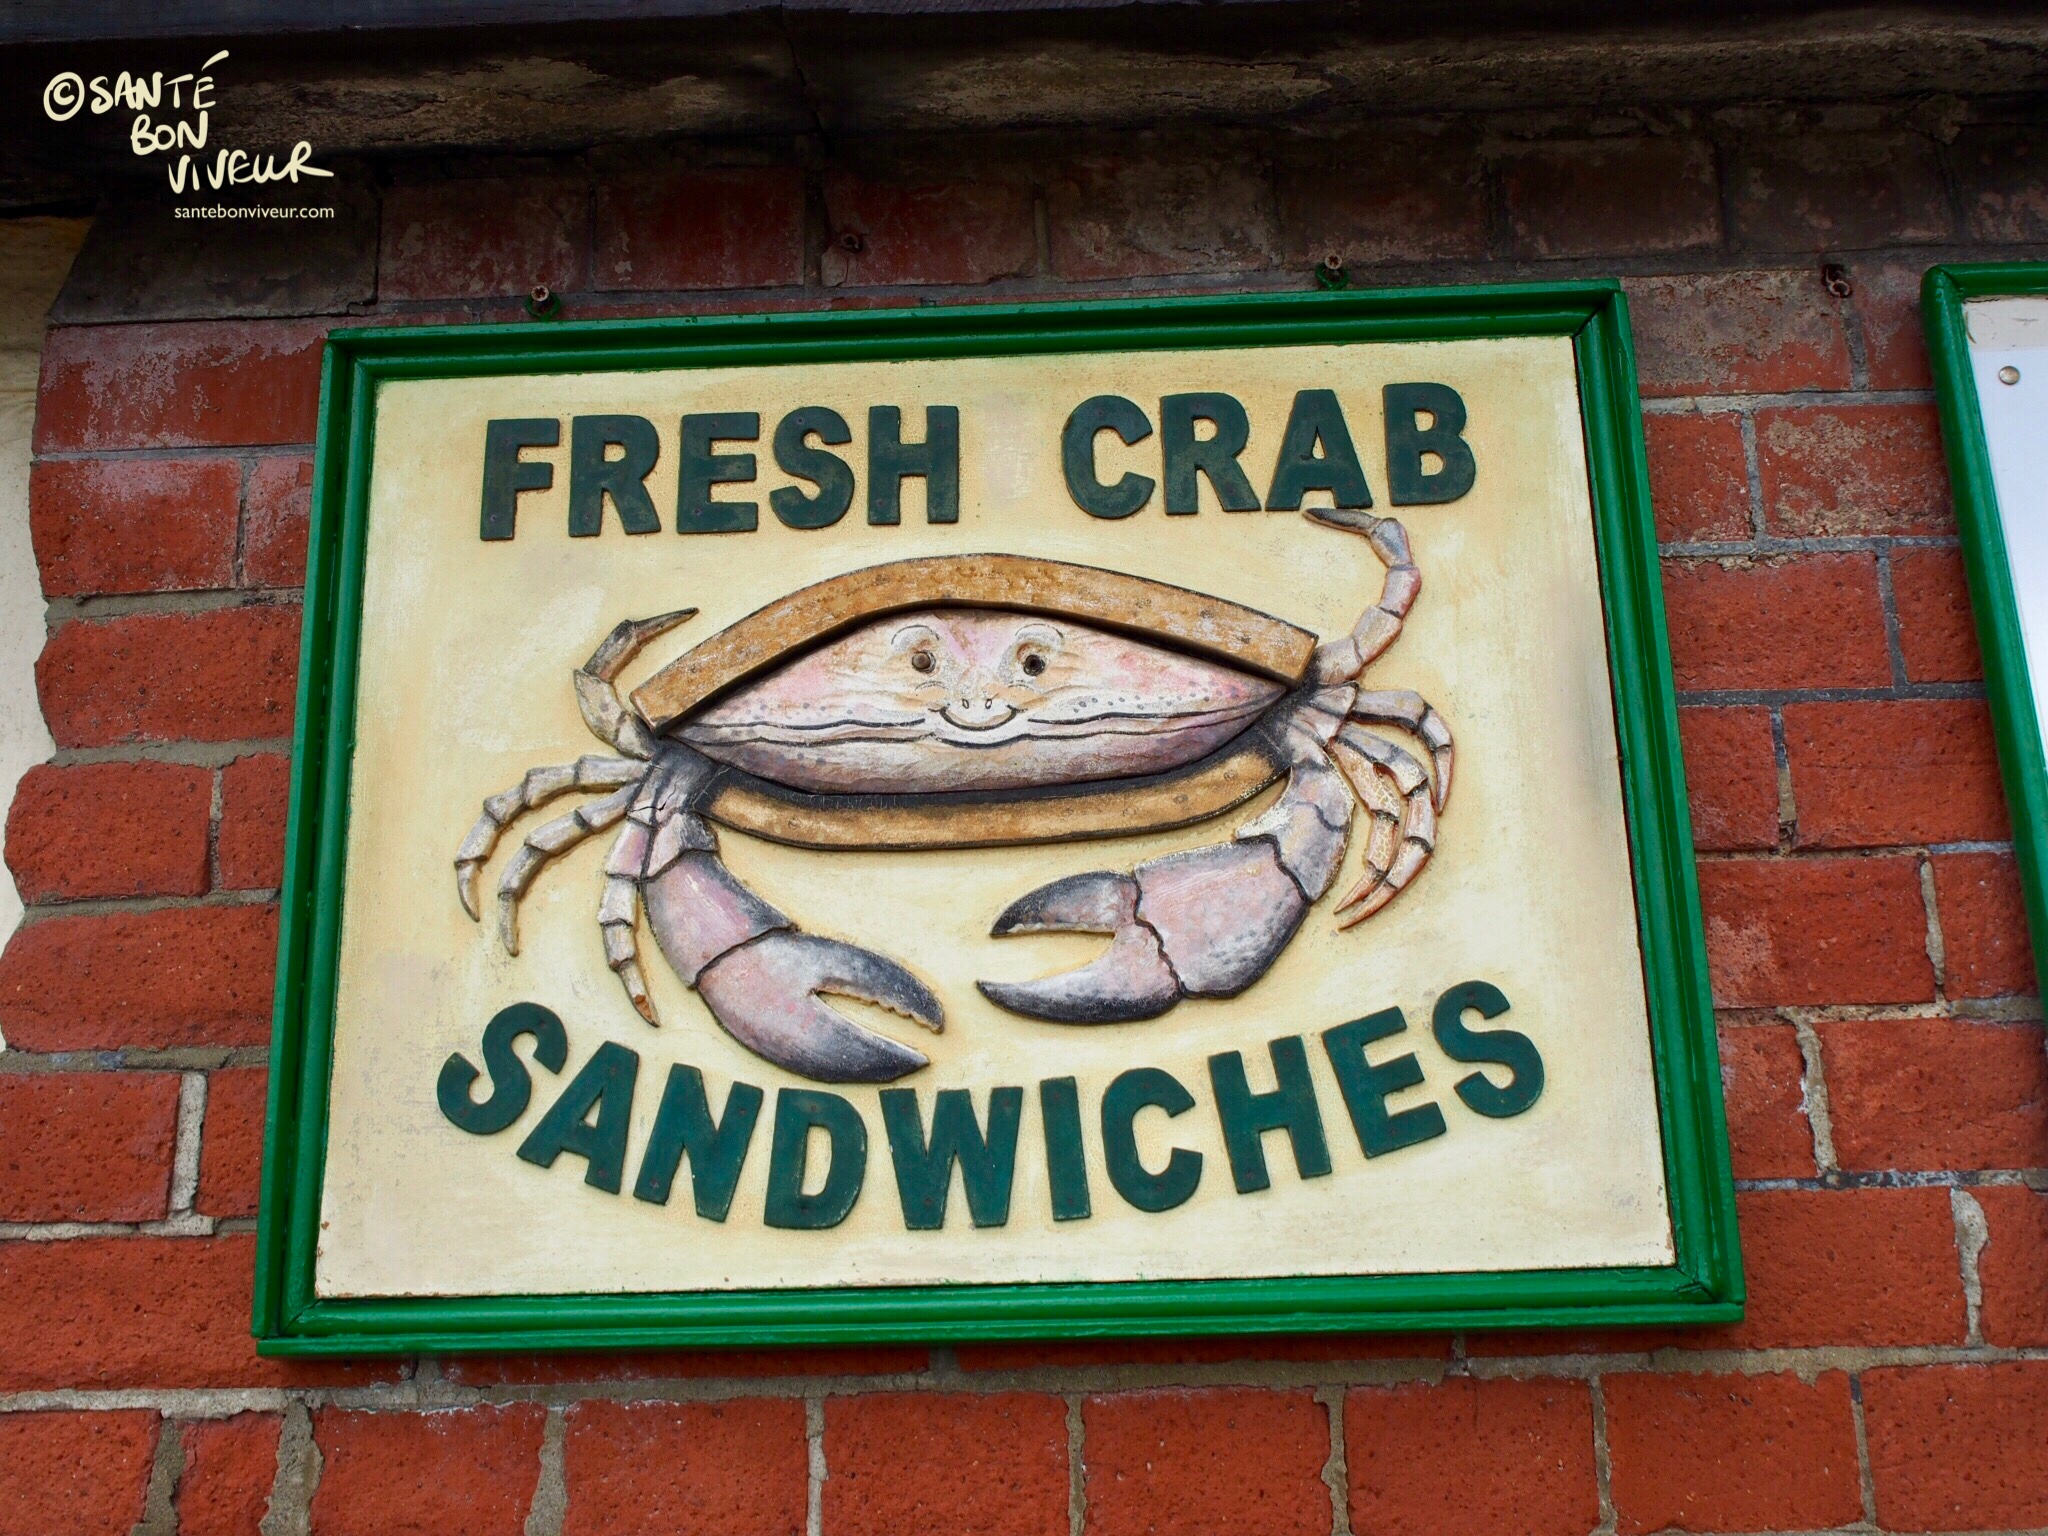 Fresh crab sandwiches for sale in Brighton's King's Road Arches at Jack & Linda Mills Traditional Fish Smokers